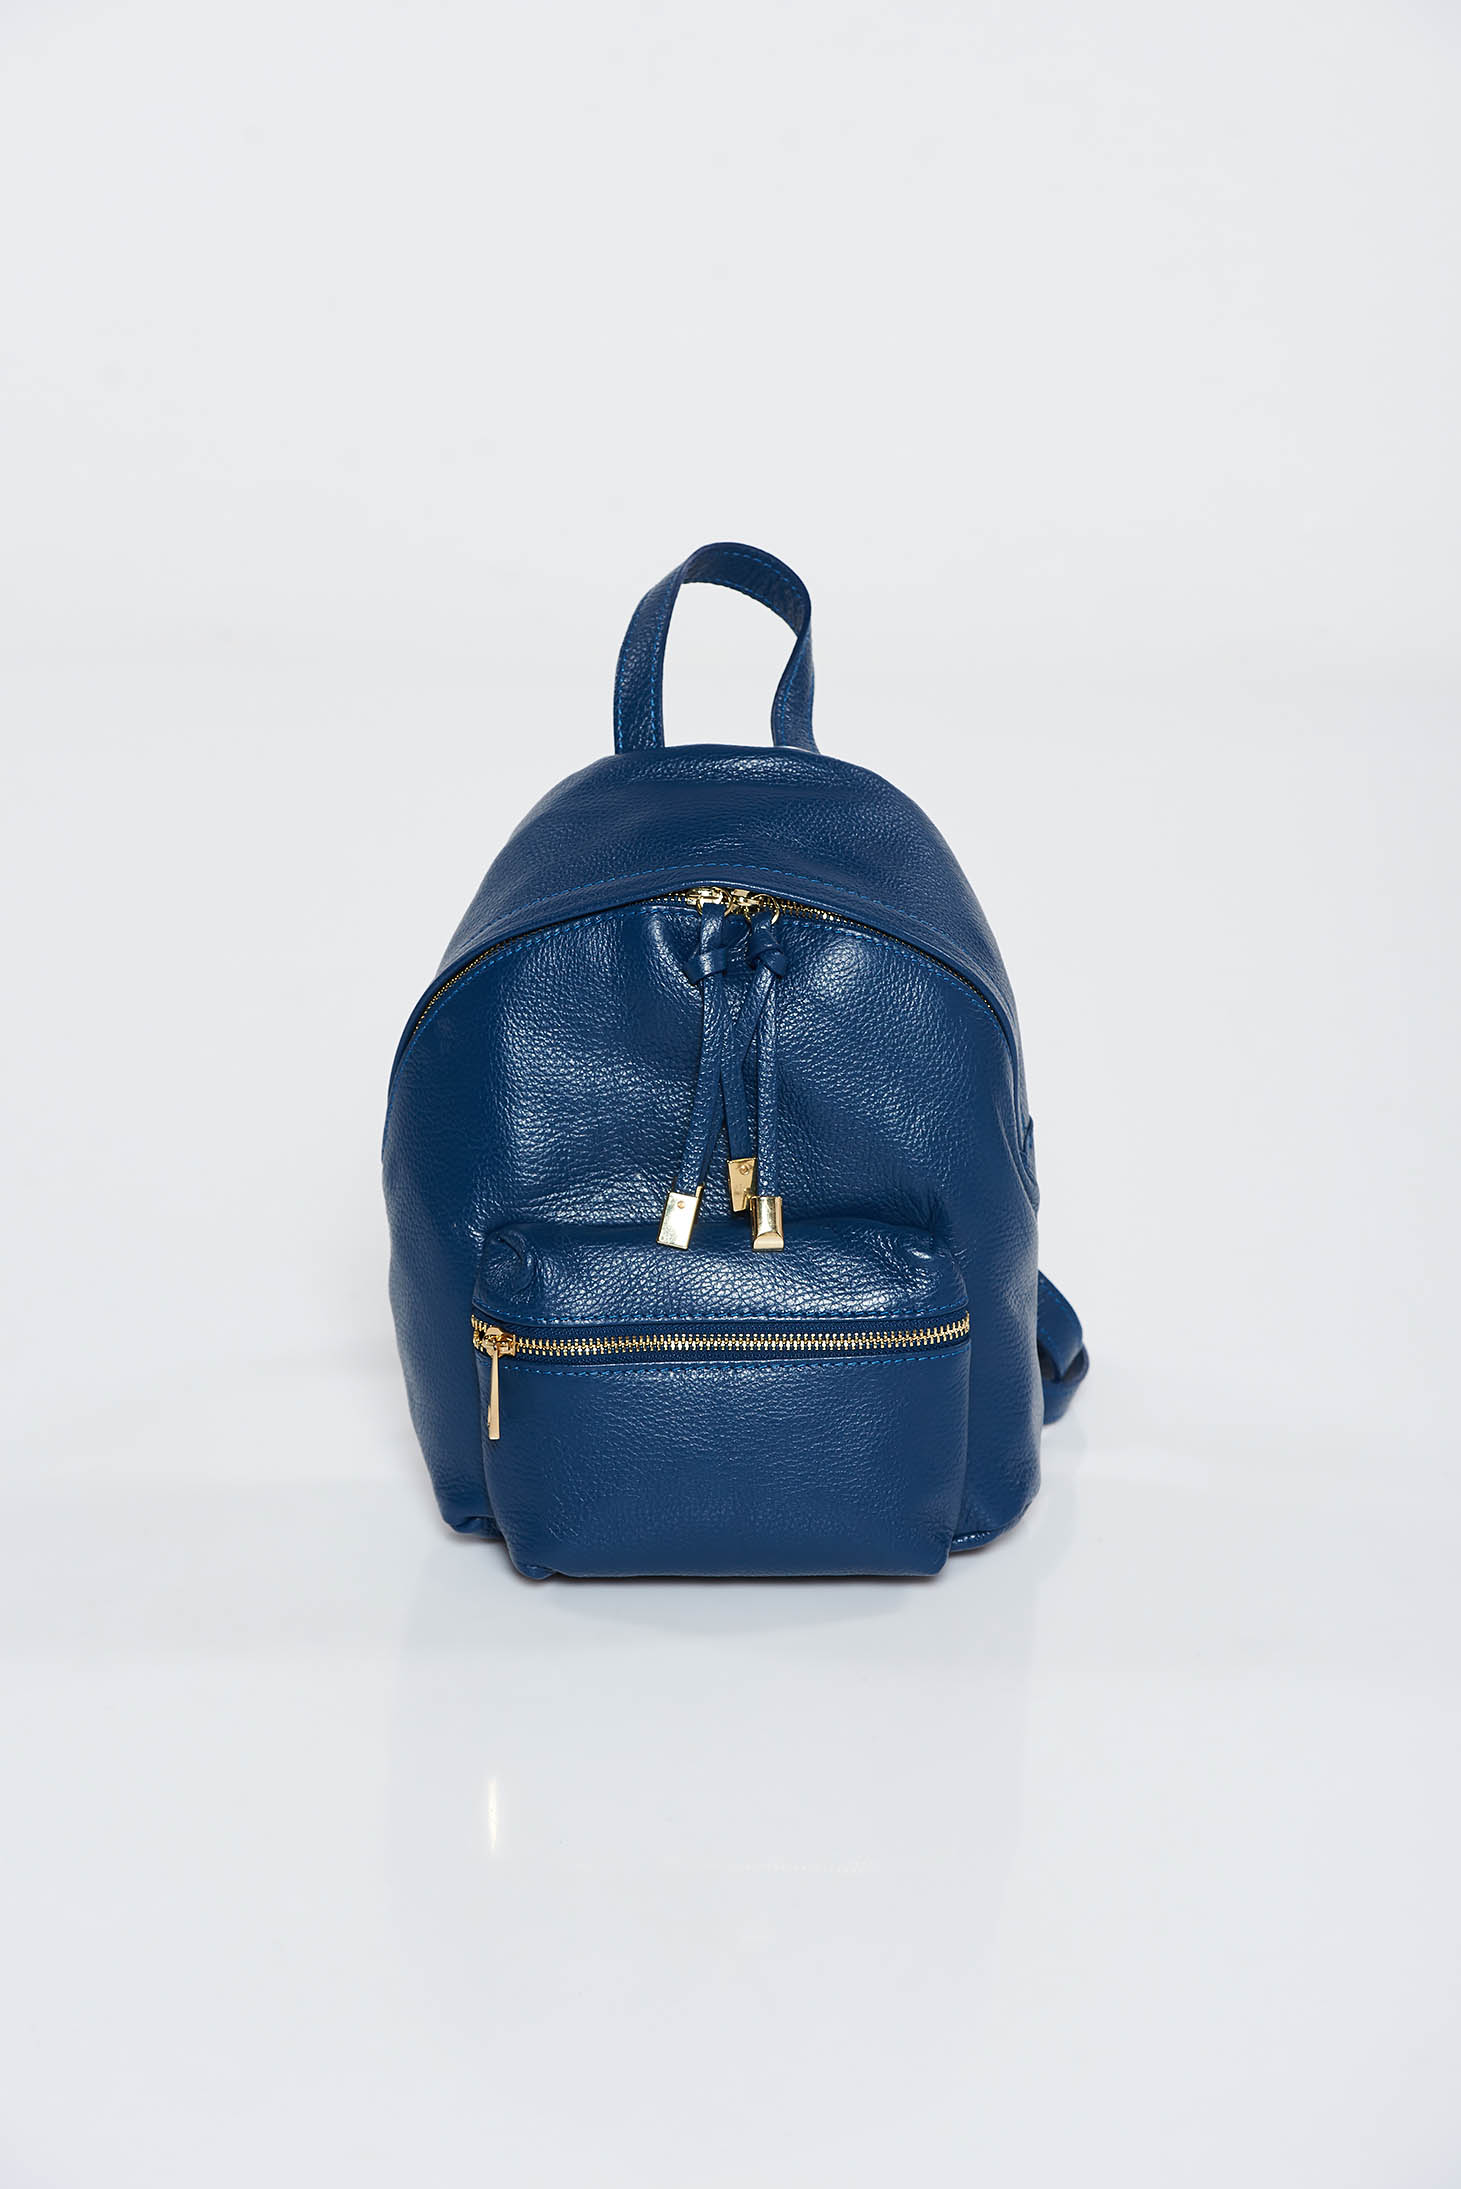 Darkblue casual backpack natural leather with metal accessories